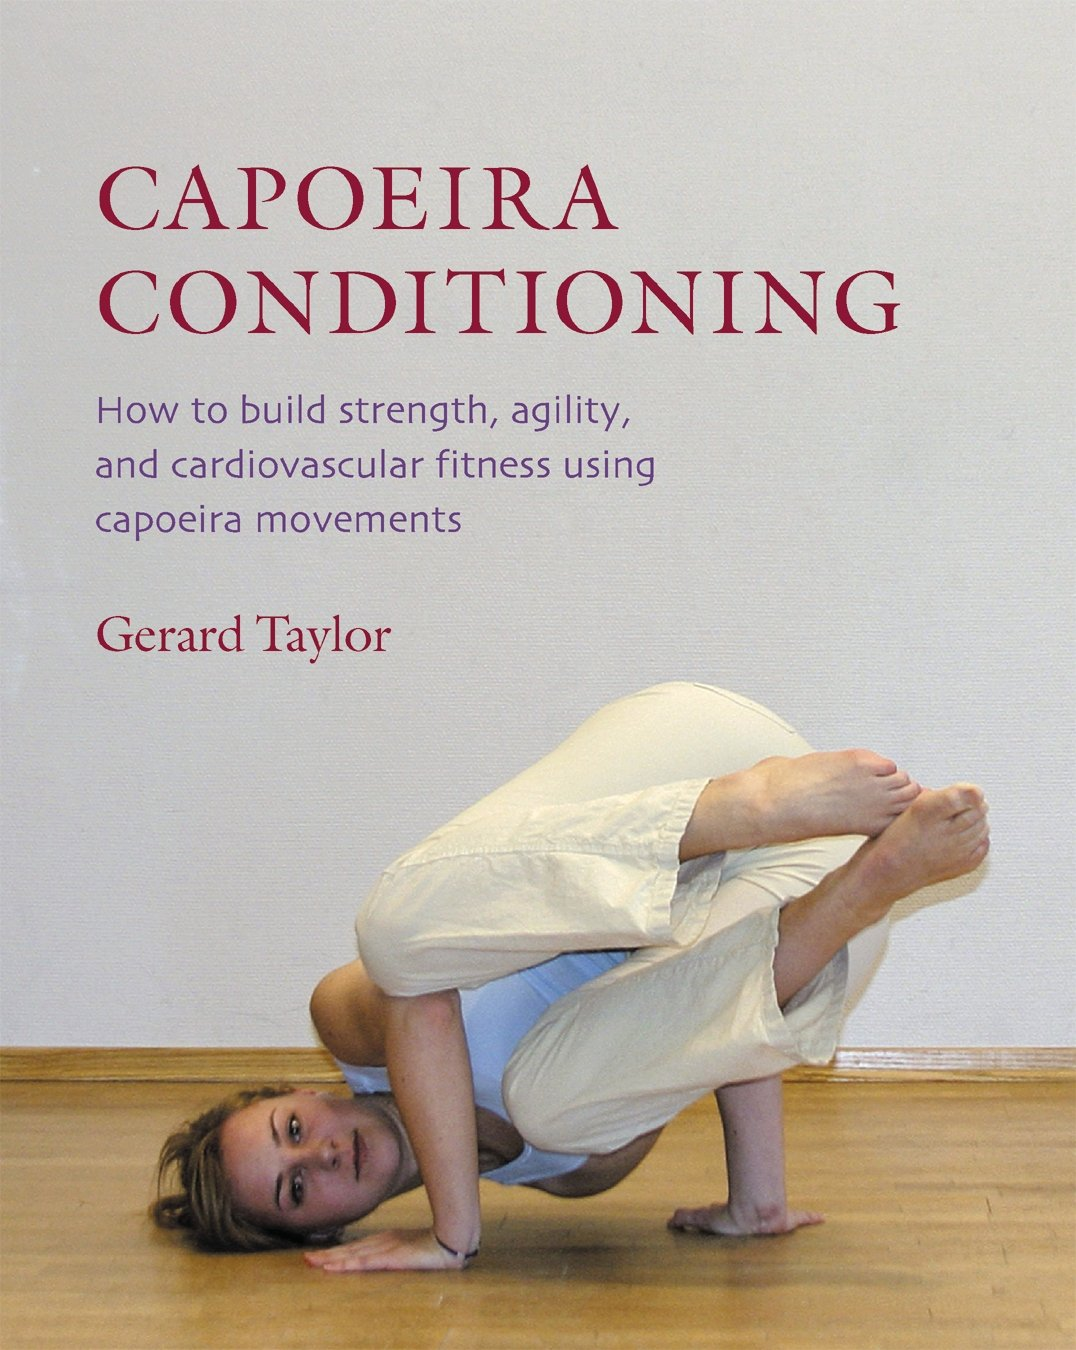 capoeira-conditioning-how-to-build-strength-agility-and-cardiovascular-fitness-using-capoeira-movements